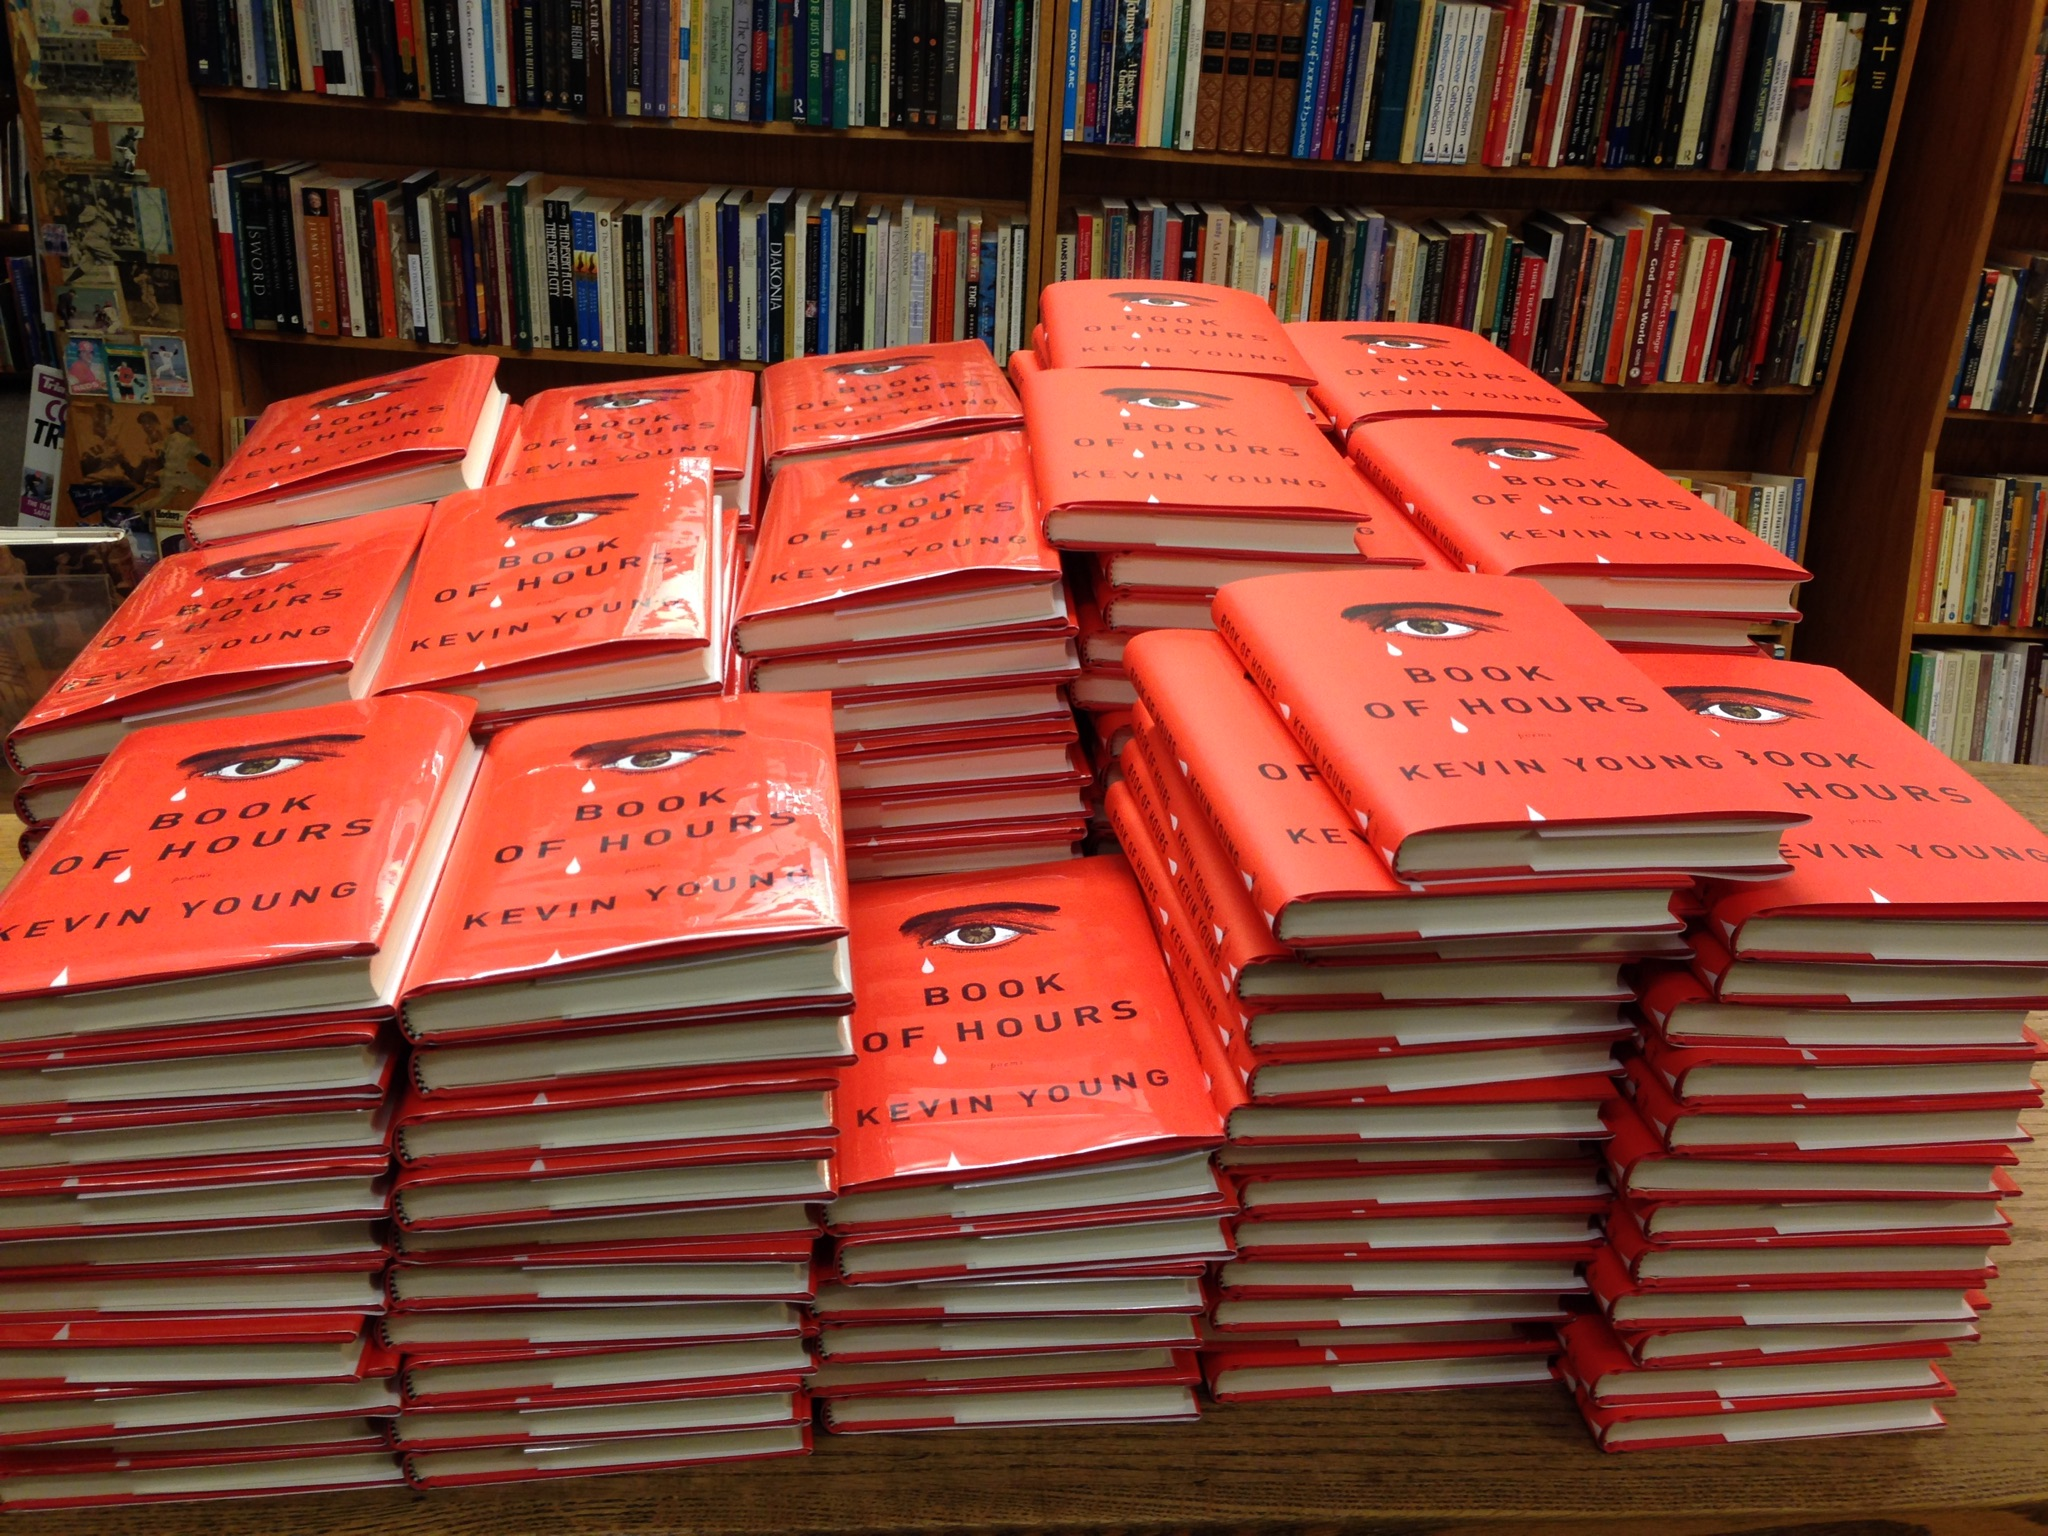 Photo of stacks of Kevin Young's 'Book of Hours'